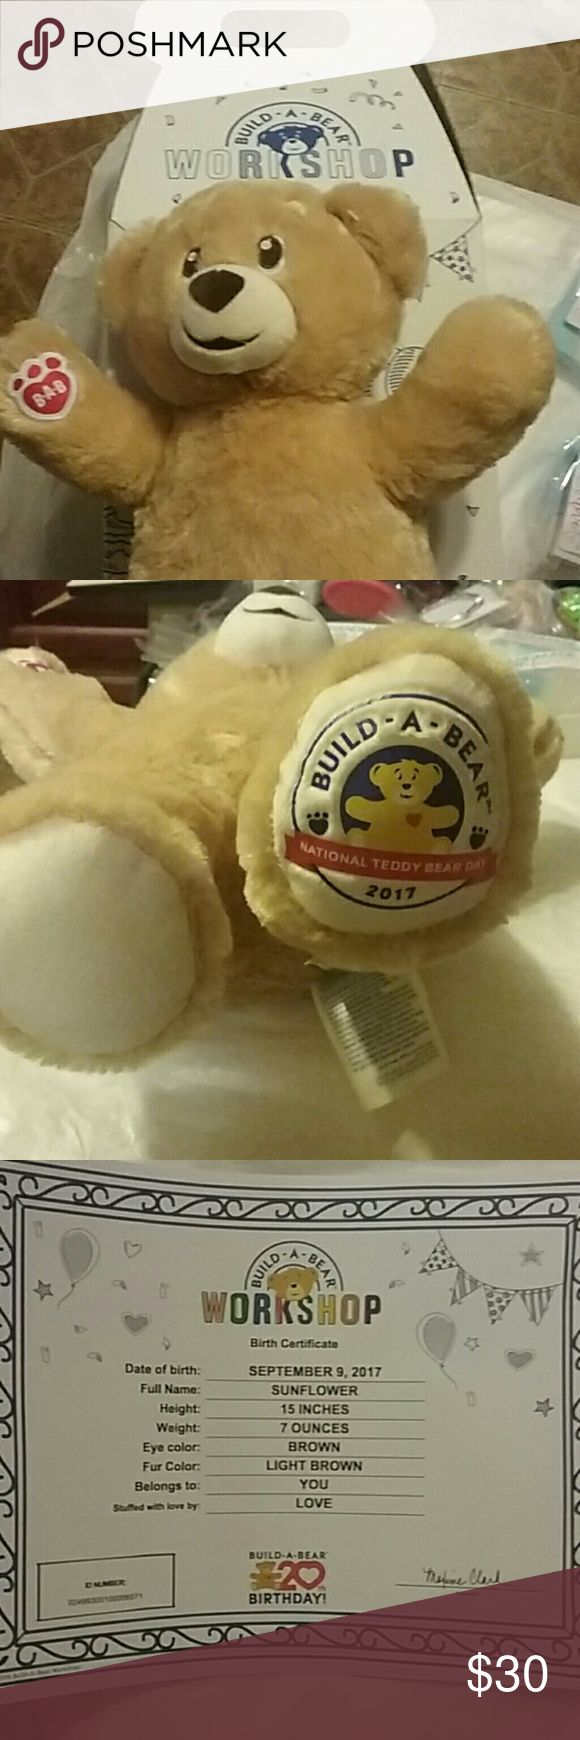 NEW 2017 BUILD A BEAR  WORKSHOP 20th BIRTHDAY!Brand new!2017 Build a bear national teddy bear day! I bought a extra for a child in family.  Didn't dress so they could.  But didn't want it. Never used, birth certificate & box included! BUILD-A-BEAR Other